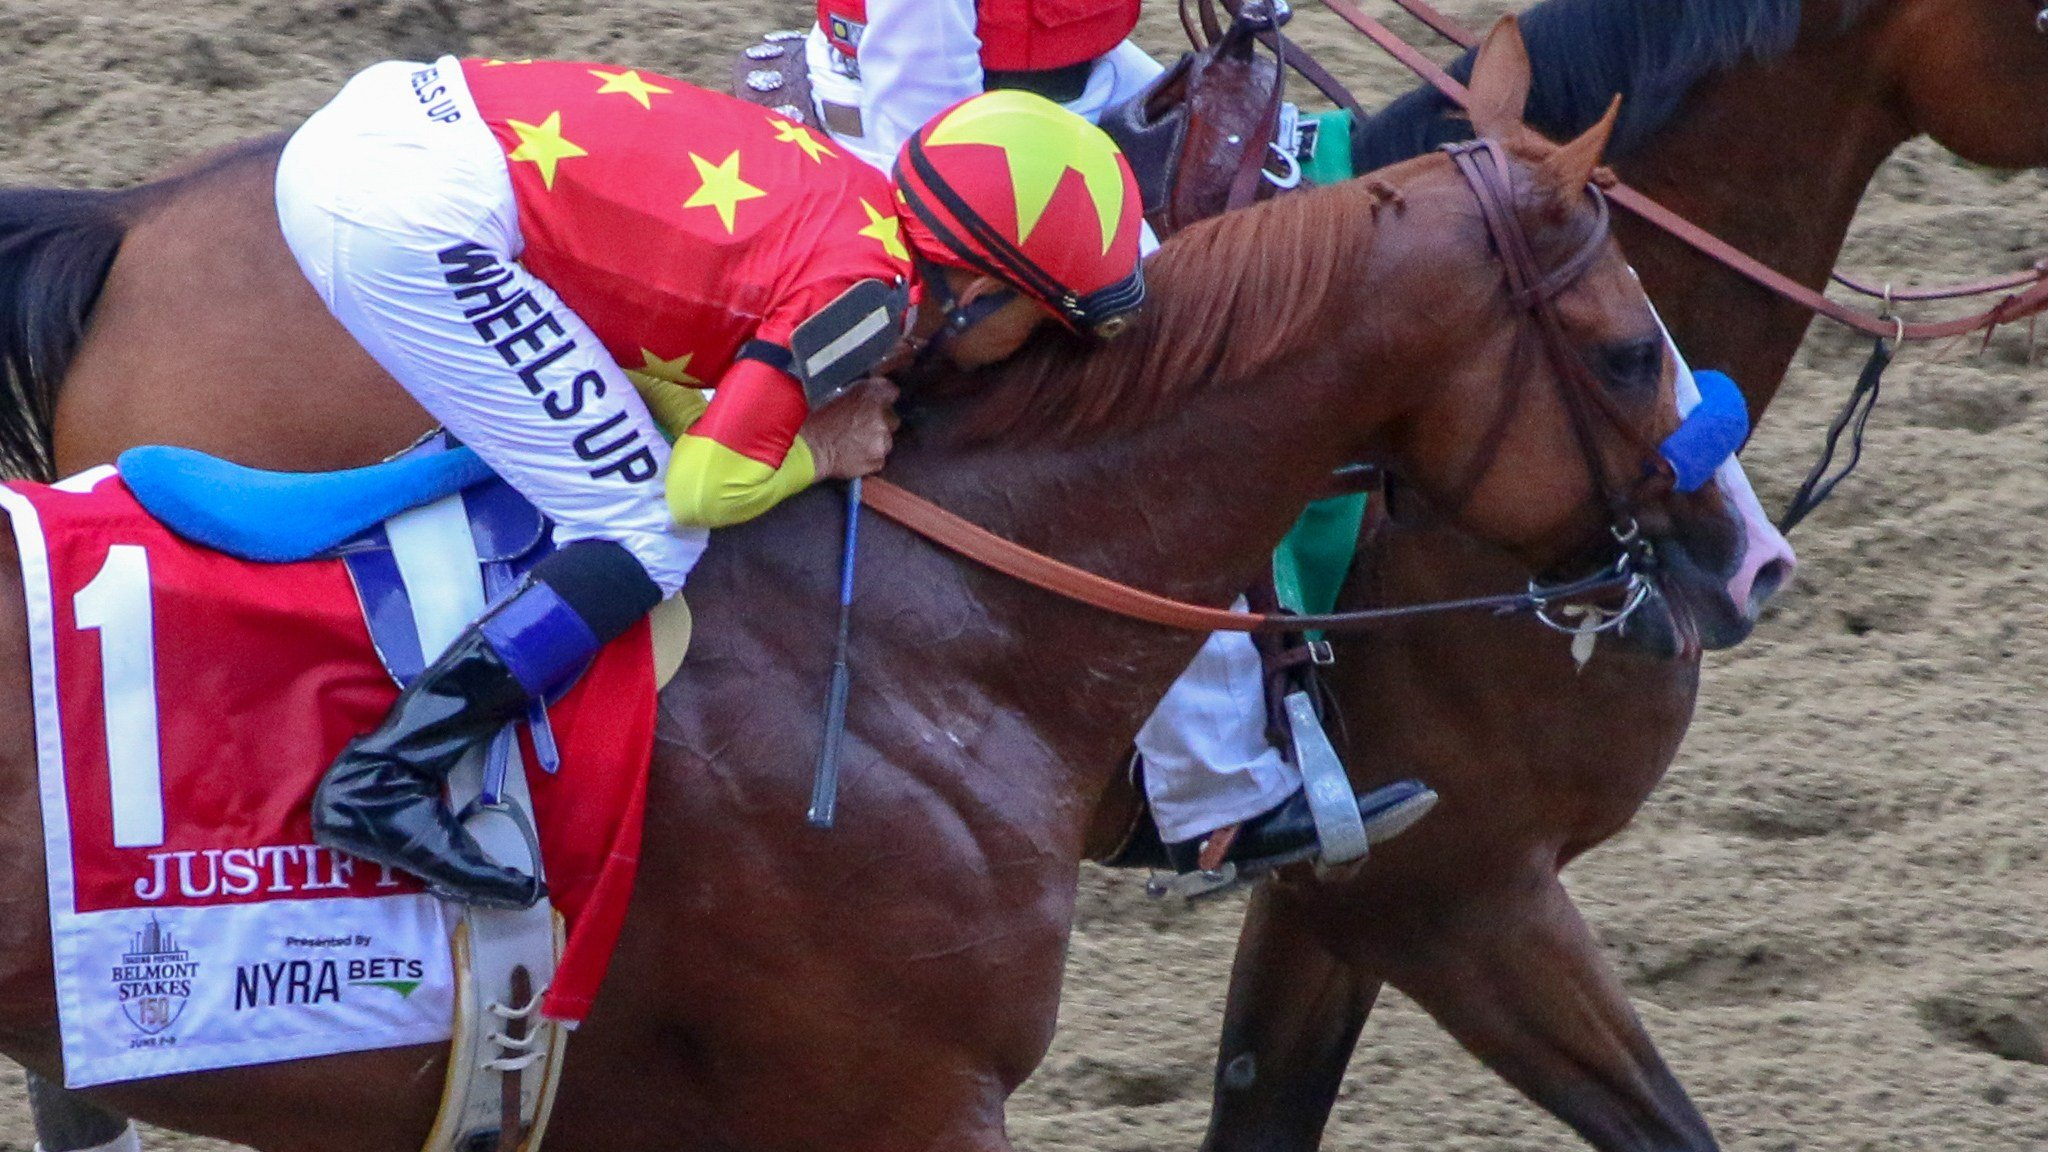 Jockey Mike Smith kisses Justify on his way to the Belmont winner's circle (WDRB photo by Eric Crawford)